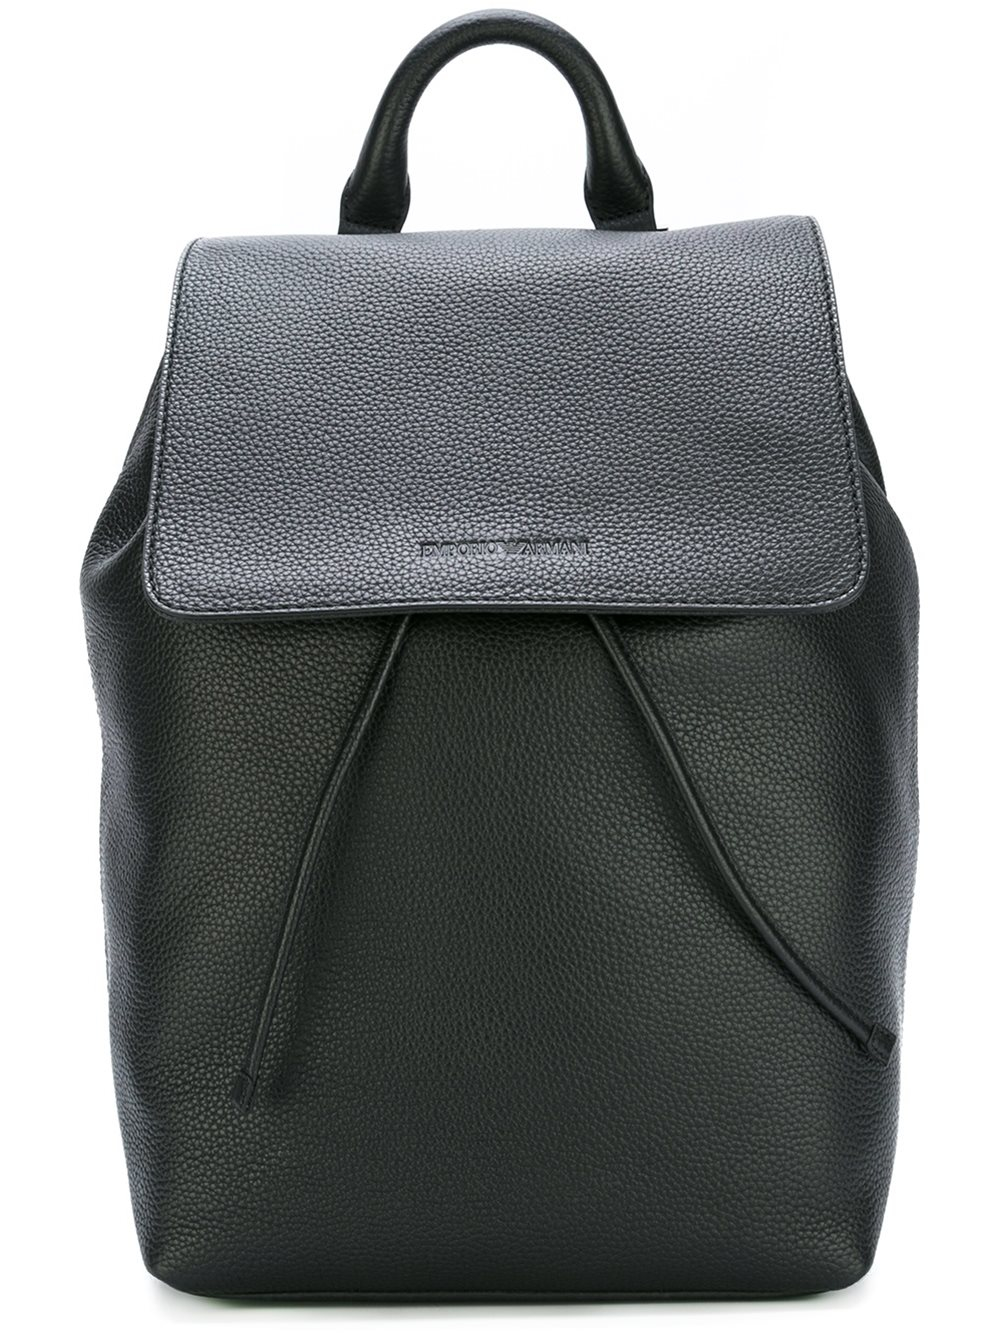 Emporio Armani Grained Leather Backpack for Men - Lyst 7a6e1f7cff7b2